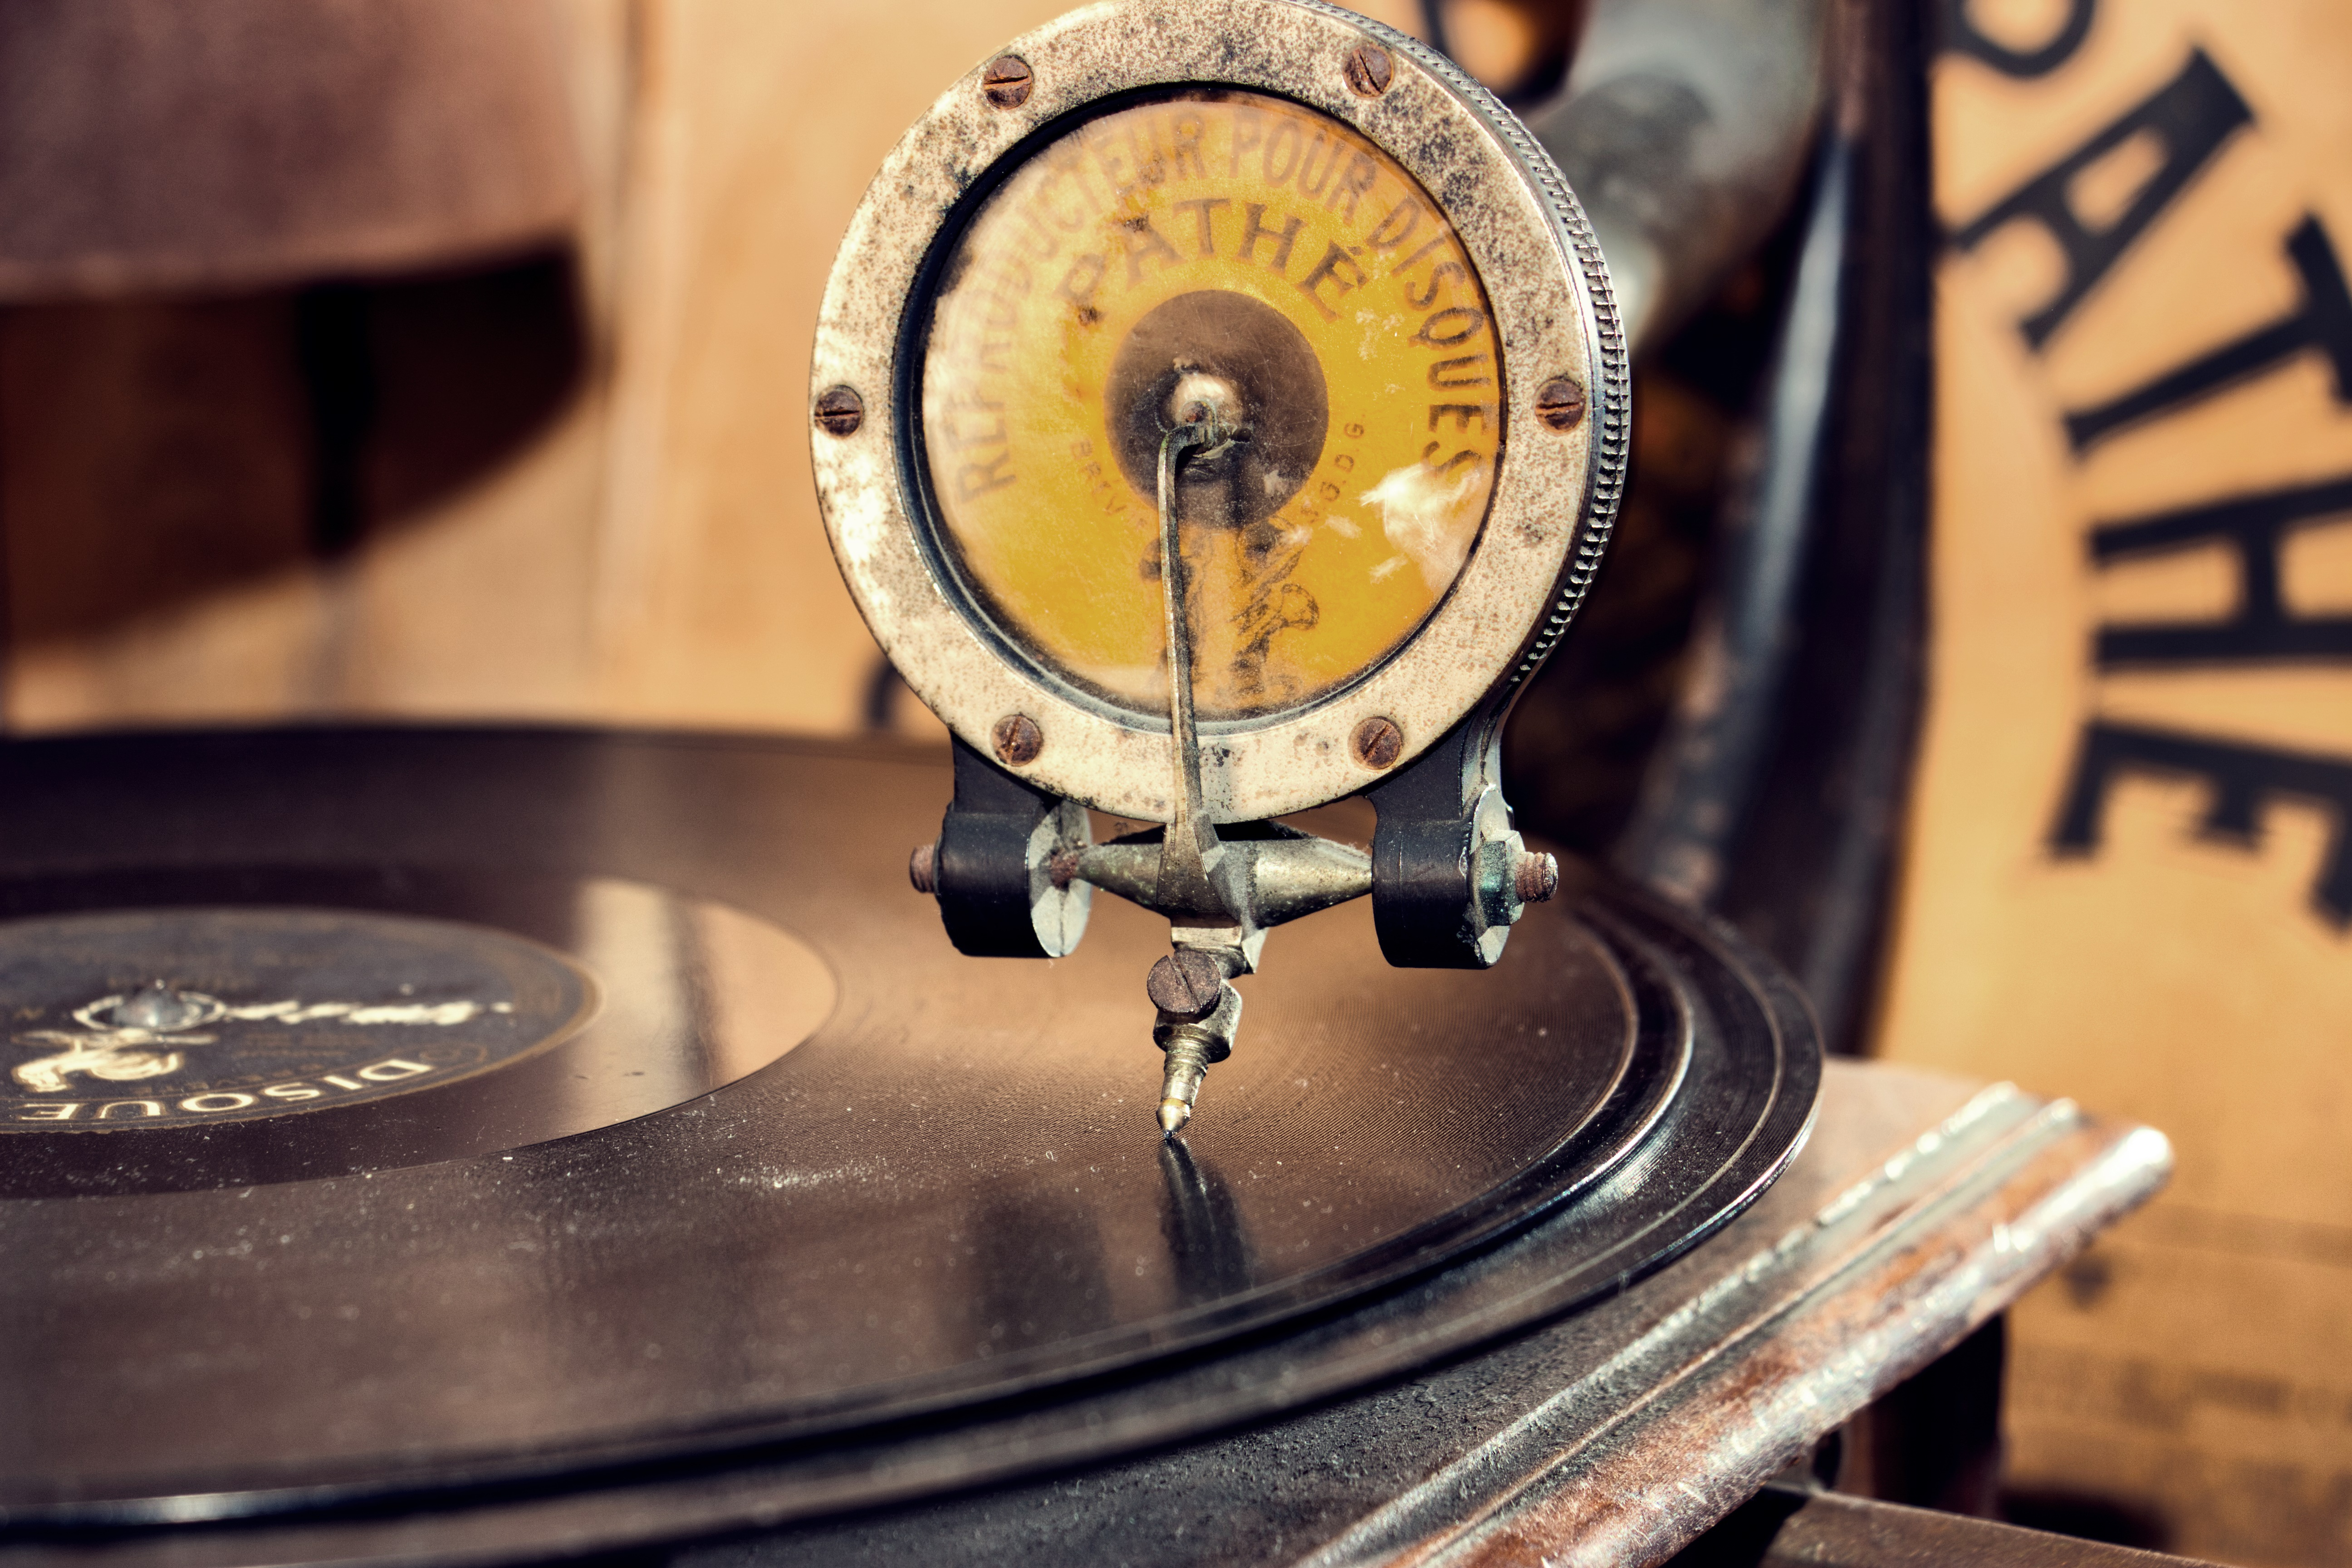 Colors of an old record player